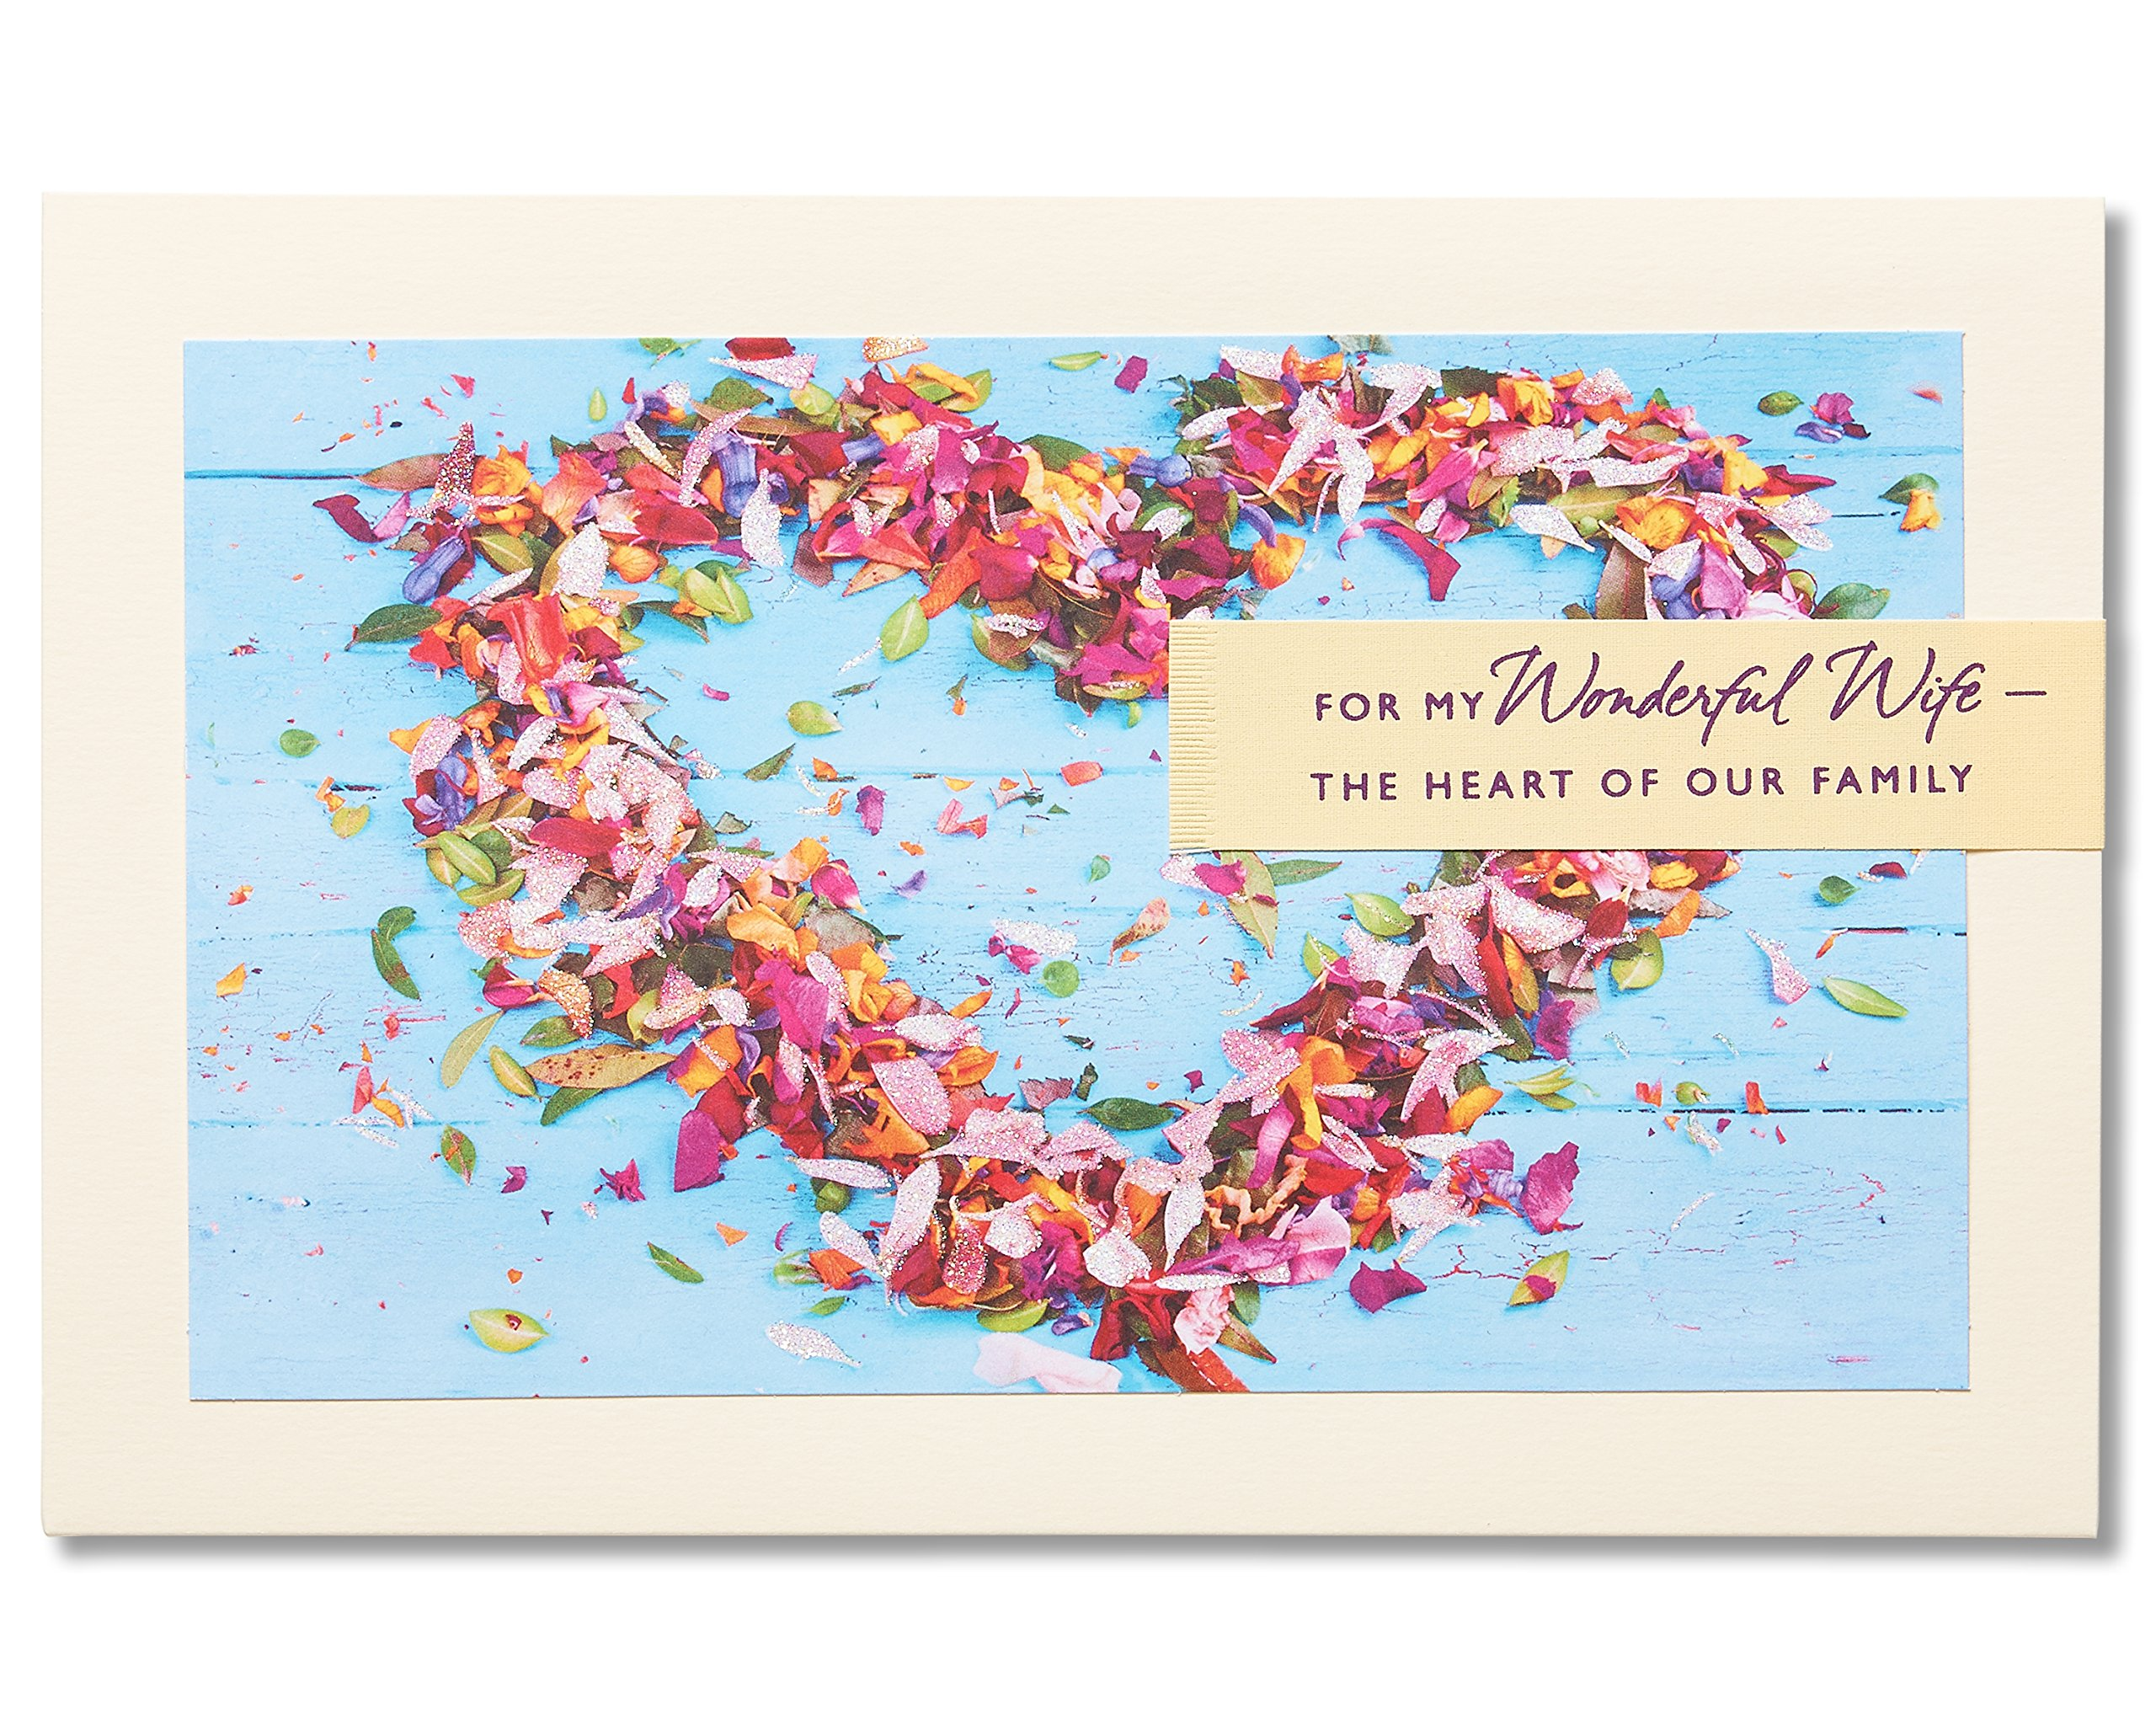 American Greetings Heart of Our Family Sentimental Mother's Day Card for Wife with Glitter